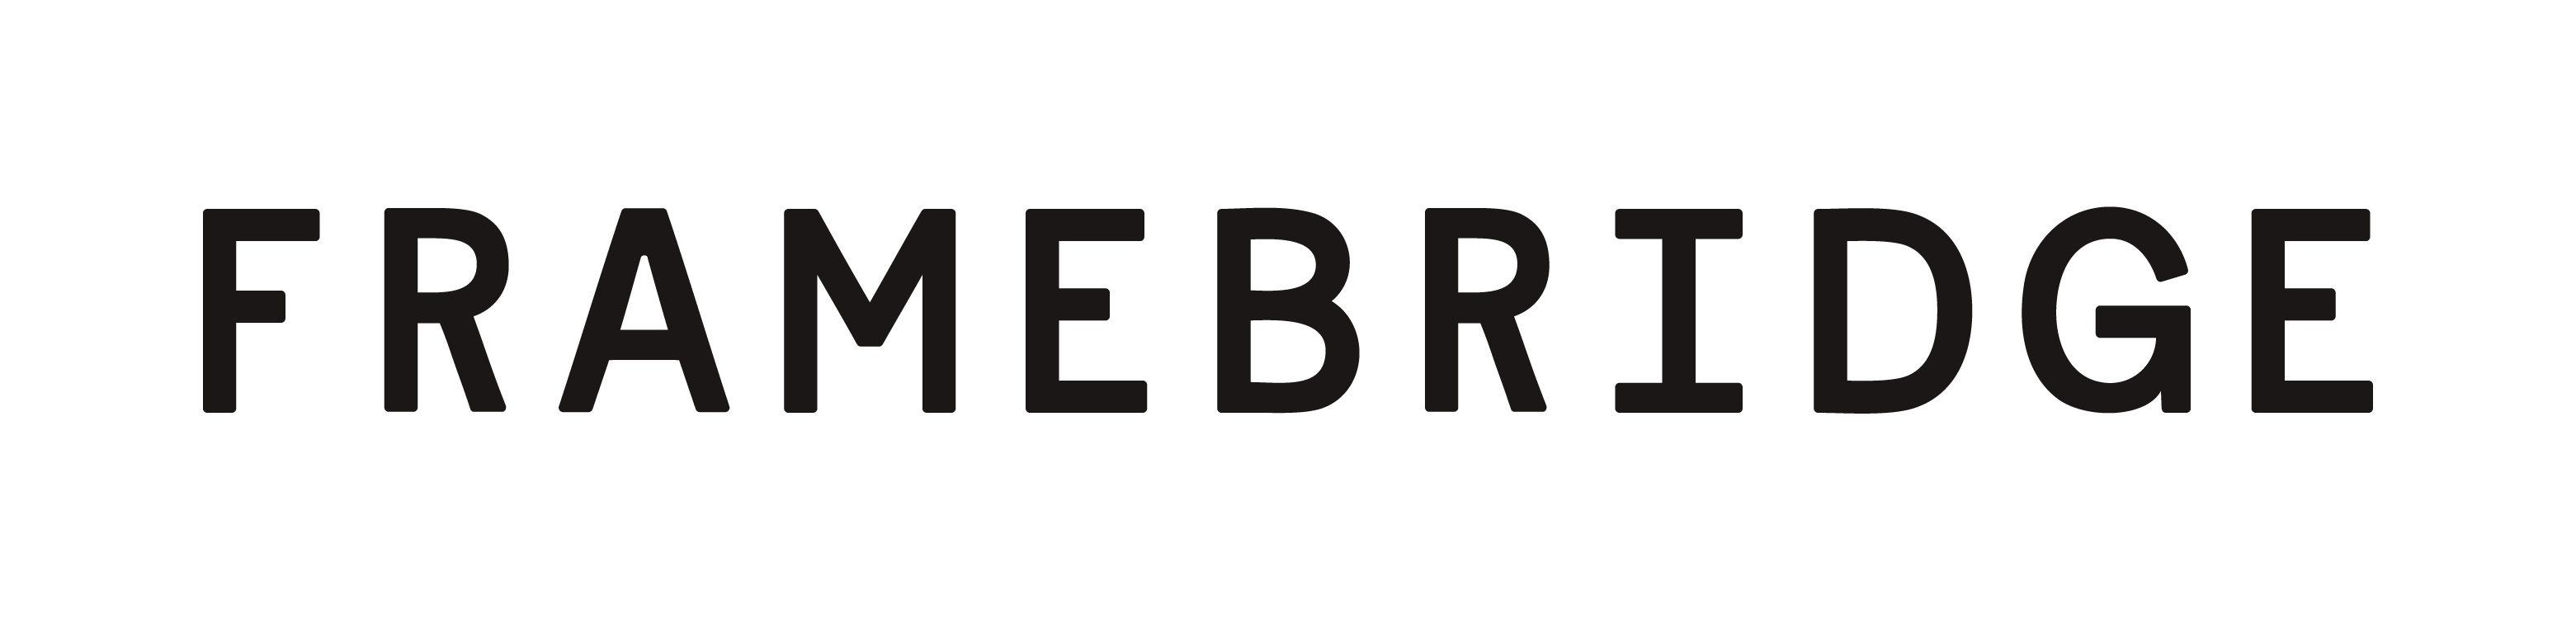 Frame bridge logo